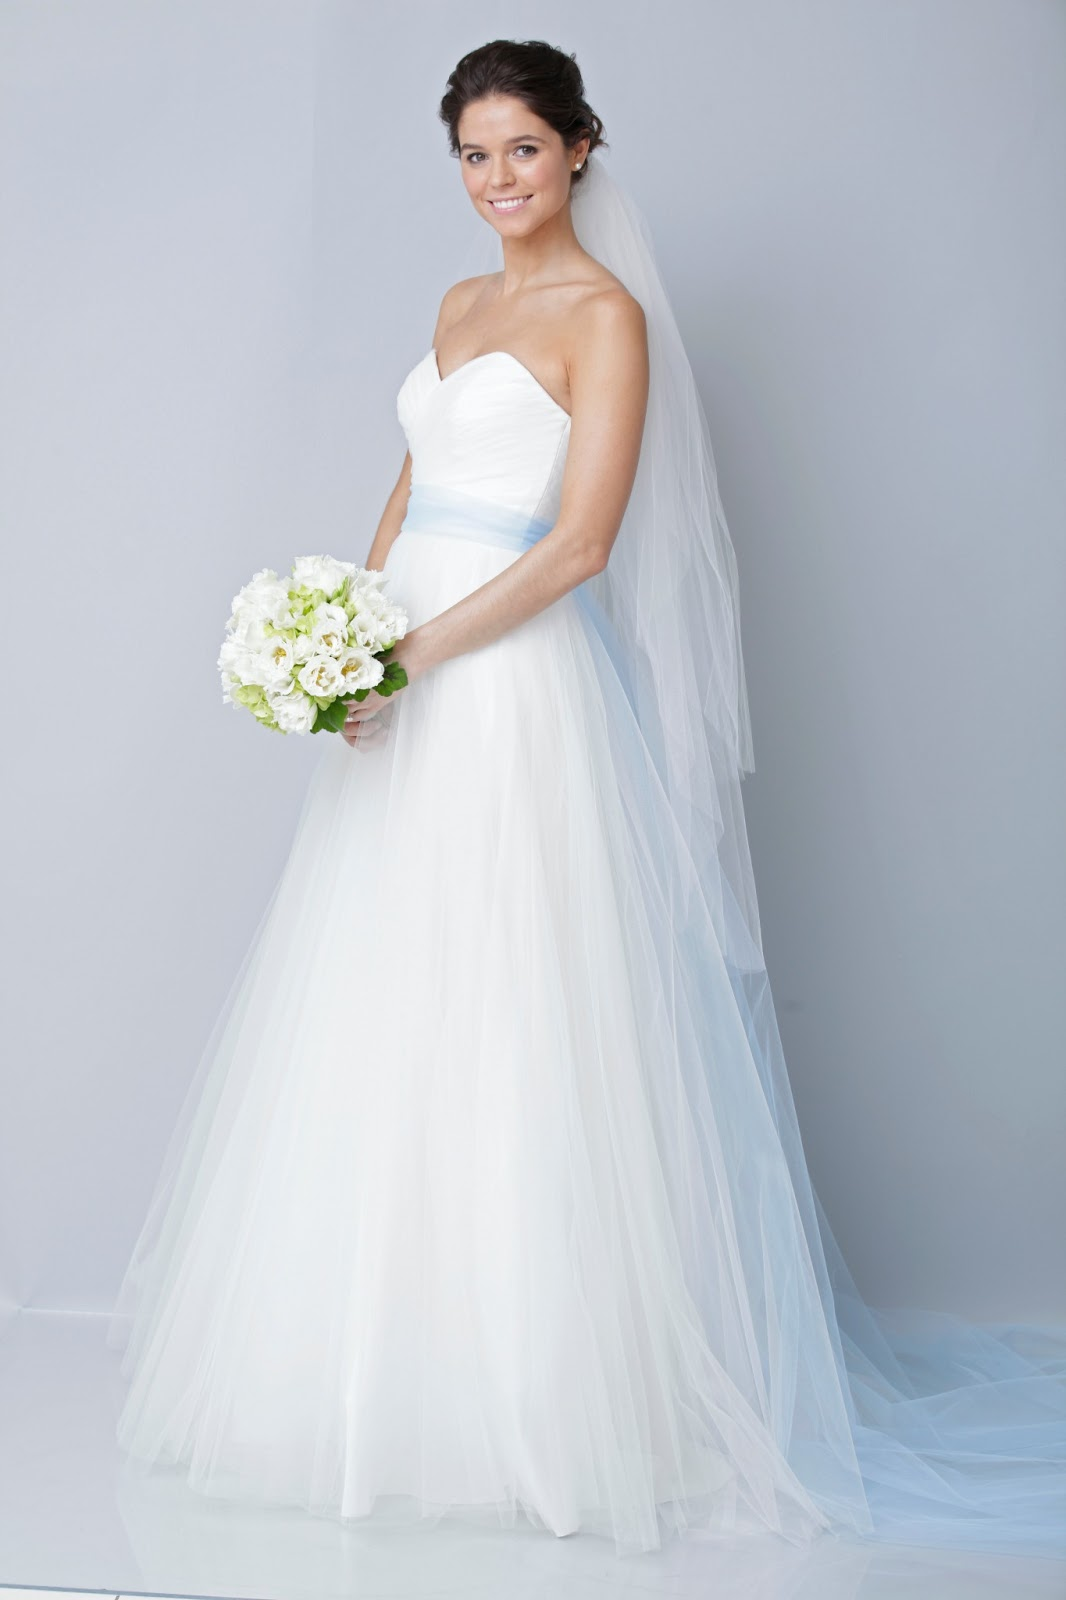 White Wedding Dresses For  : Coolingerie are you get bored with the white wedding dress